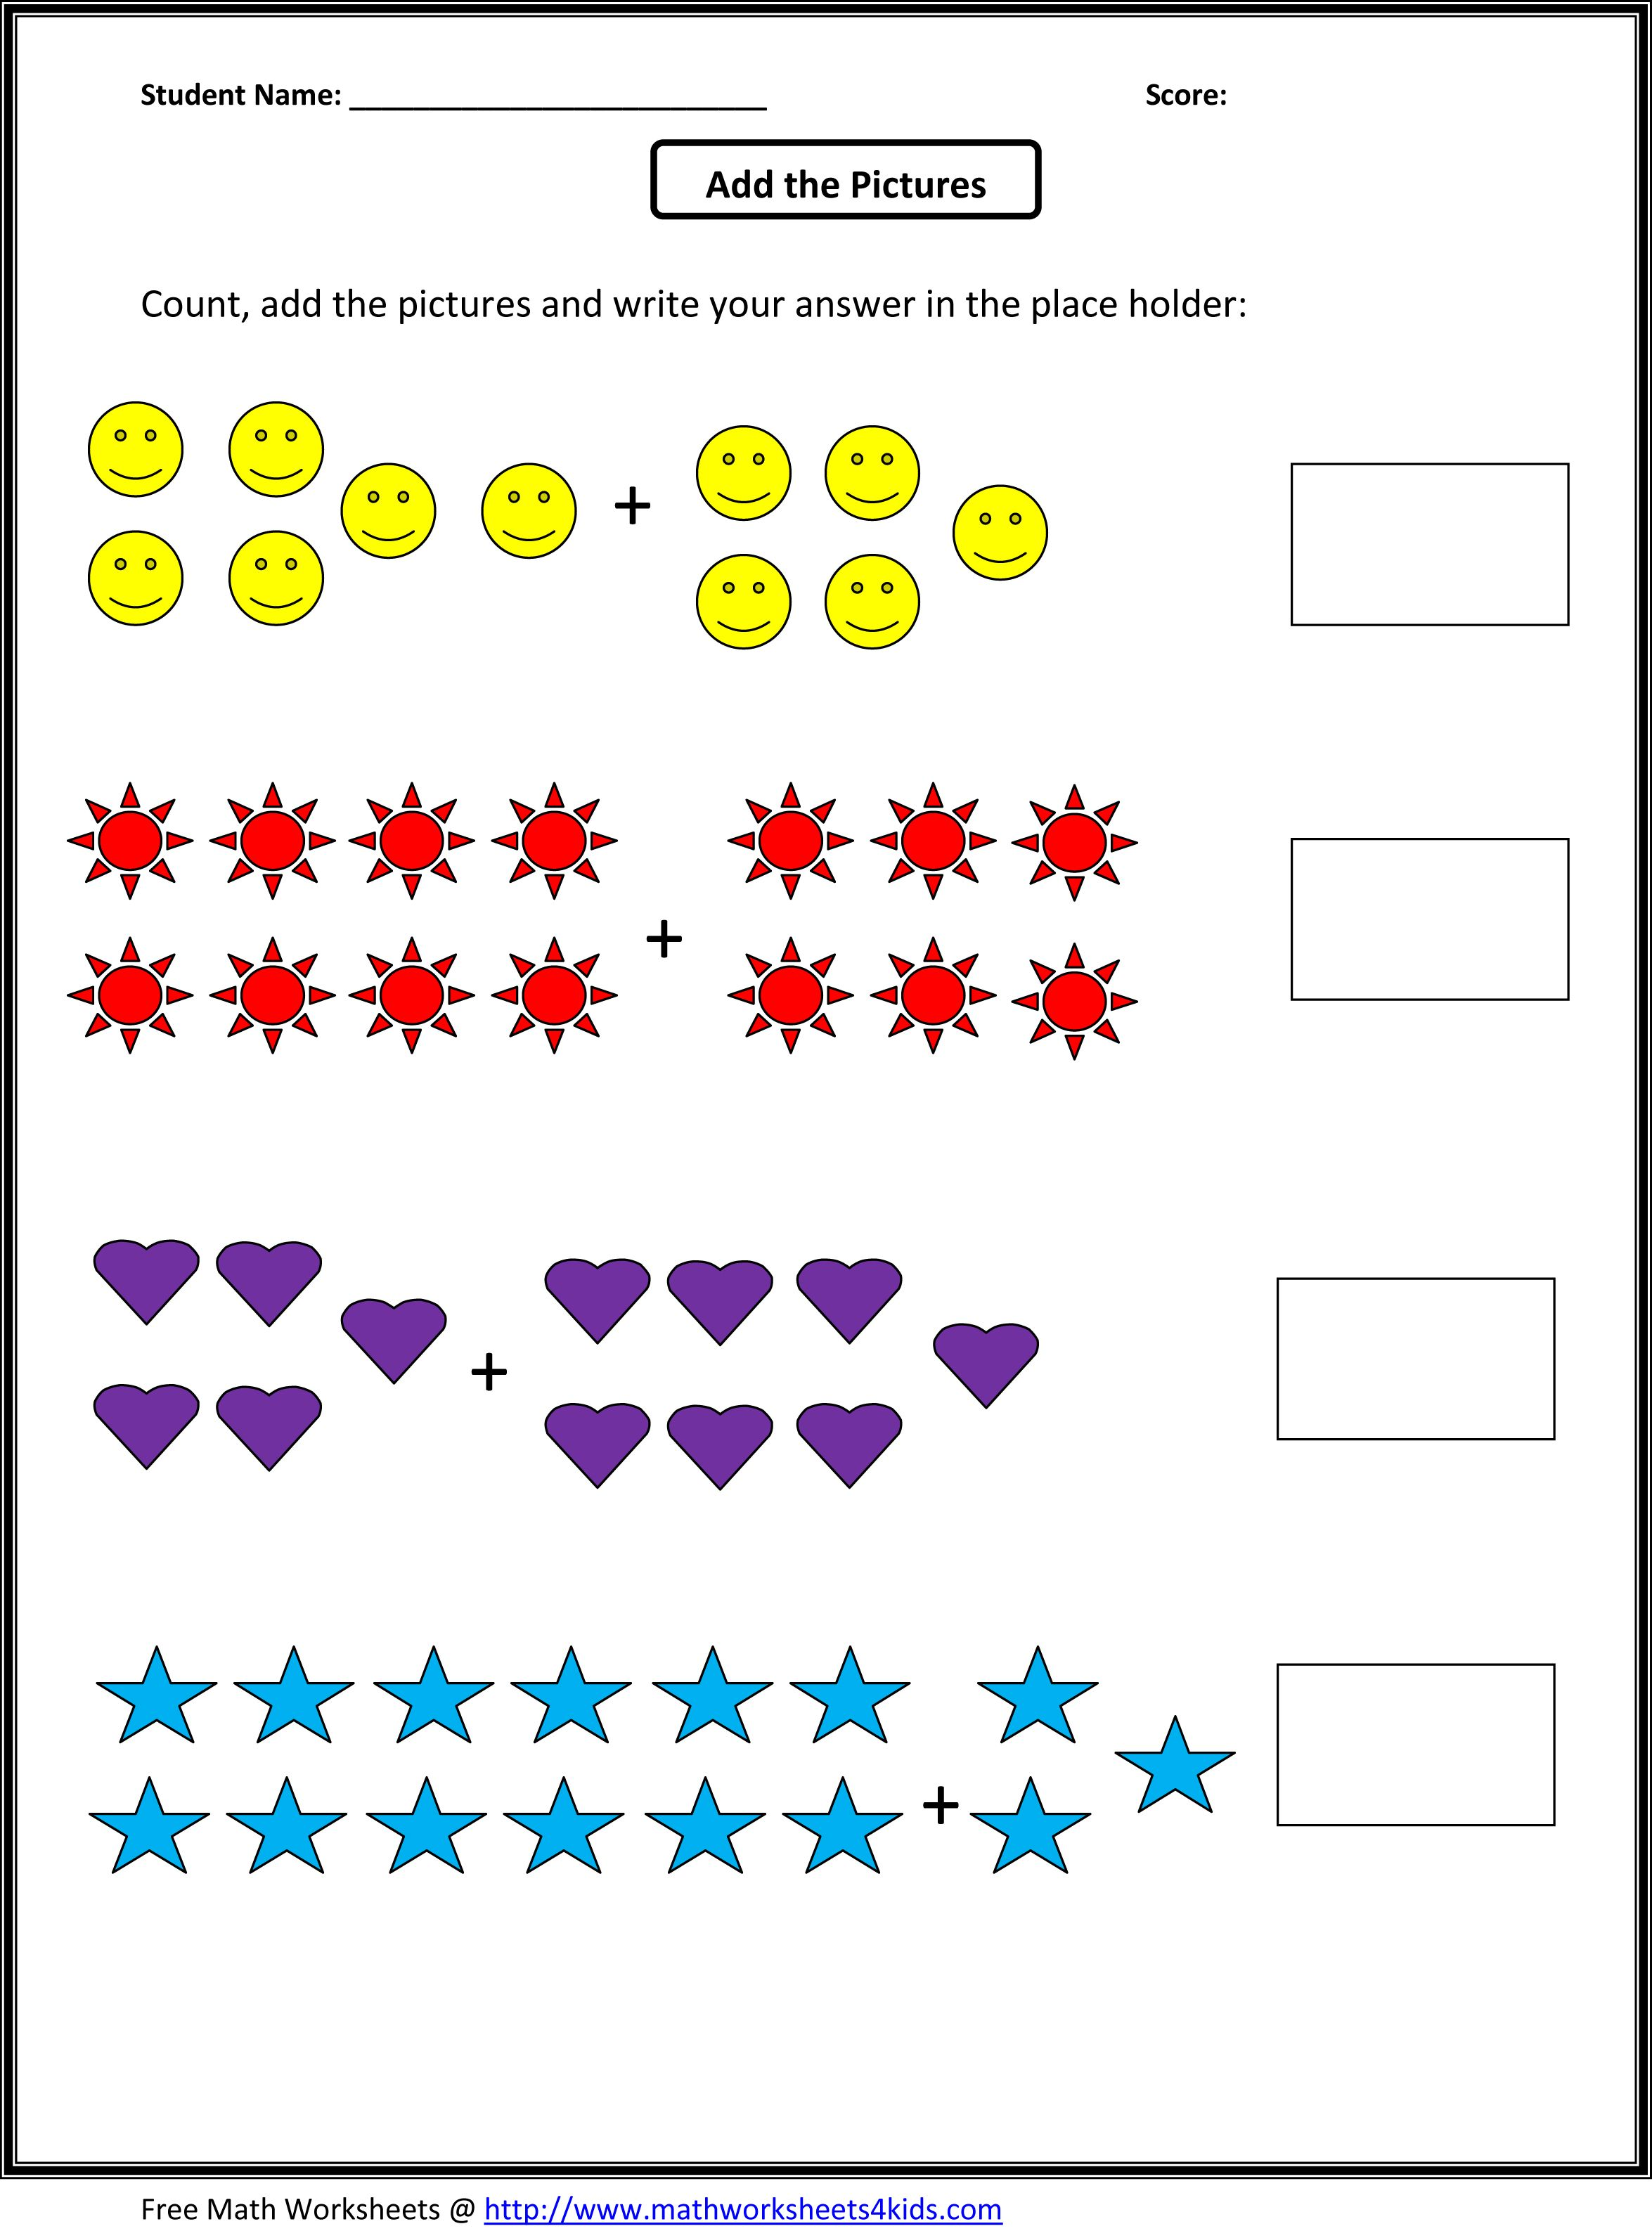 Aldiablosus  Fascinating Worksheet For Math Grade   Coffemix With Gorgeous  Images About School On Pinterest  Mental Maths Worksheets  With Comely Free Teacher Worksheets For Nd Grade Also Simile Worksheets Grade  In Addition Free Online Budget Planner Worksheet And Whole Numbers Worksheet As Well As Math Worksheets To Print For Nd Graders Additionally Adding And Subtraction Worksheet From Coffemixcom With Aldiablosus  Gorgeous Worksheet For Math Grade   Coffemix With Comely  Images About School On Pinterest  Mental Maths Worksheets  And Fascinating Free Teacher Worksheets For Nd Grade Also Simile Worksheets Grade  In Addition Free Online Budget Planner Worksheet From Coffemixcom